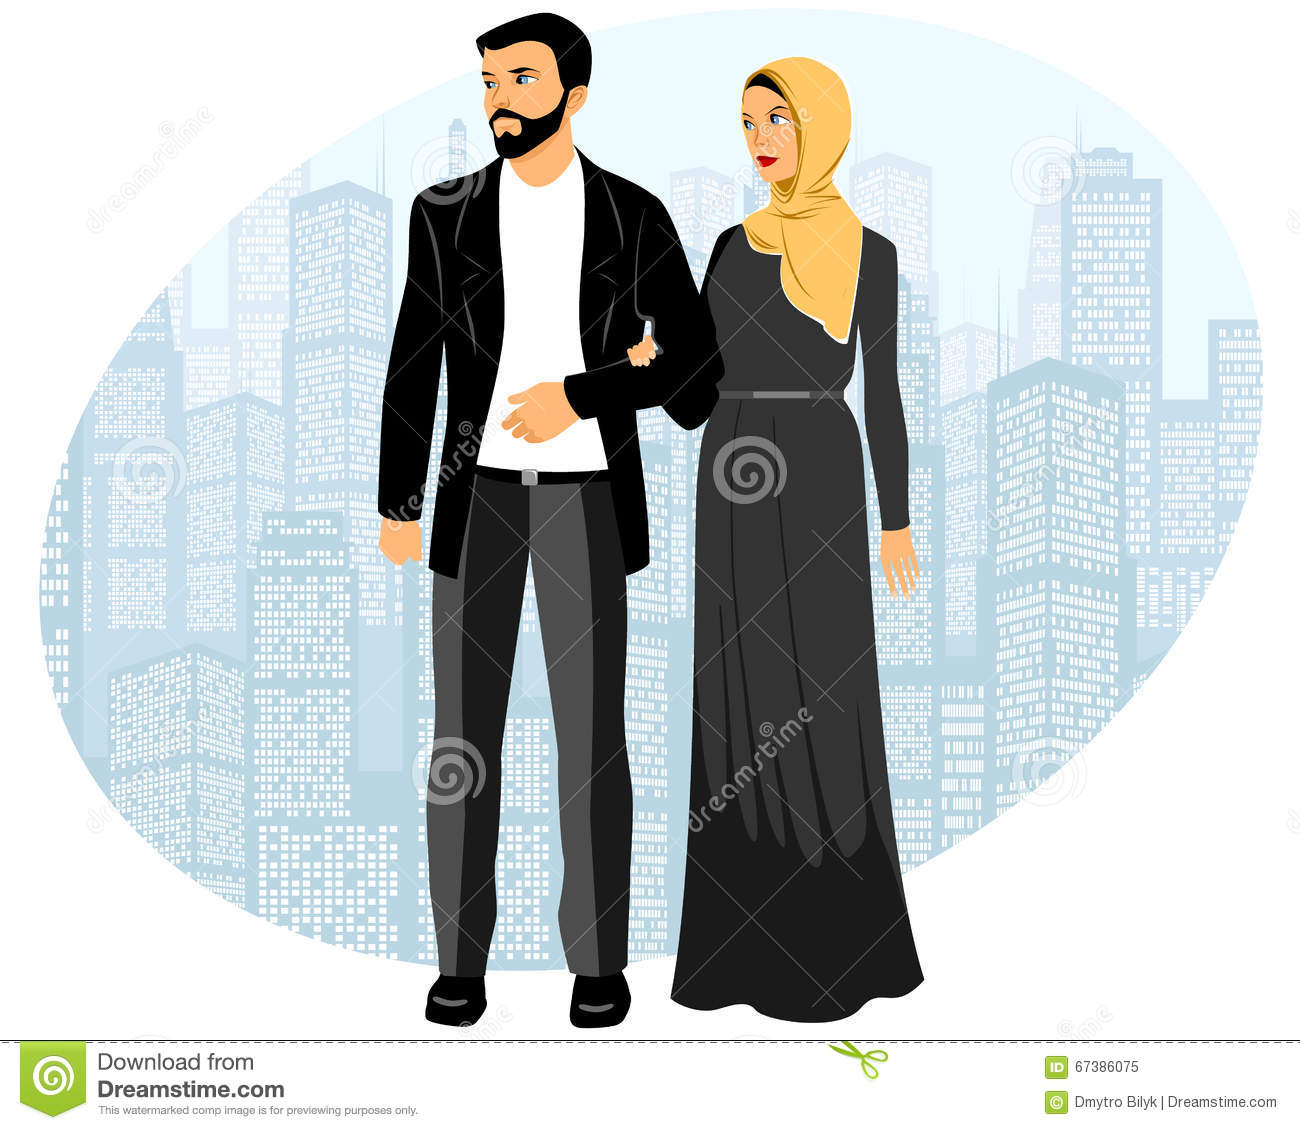 gates mills muslim dating site What's the best dating site for you are you ready to try online dating thousands of singles join online dating sites every day with seemingly endless options, the list below can help you find a dating site that fits your lifestyle.